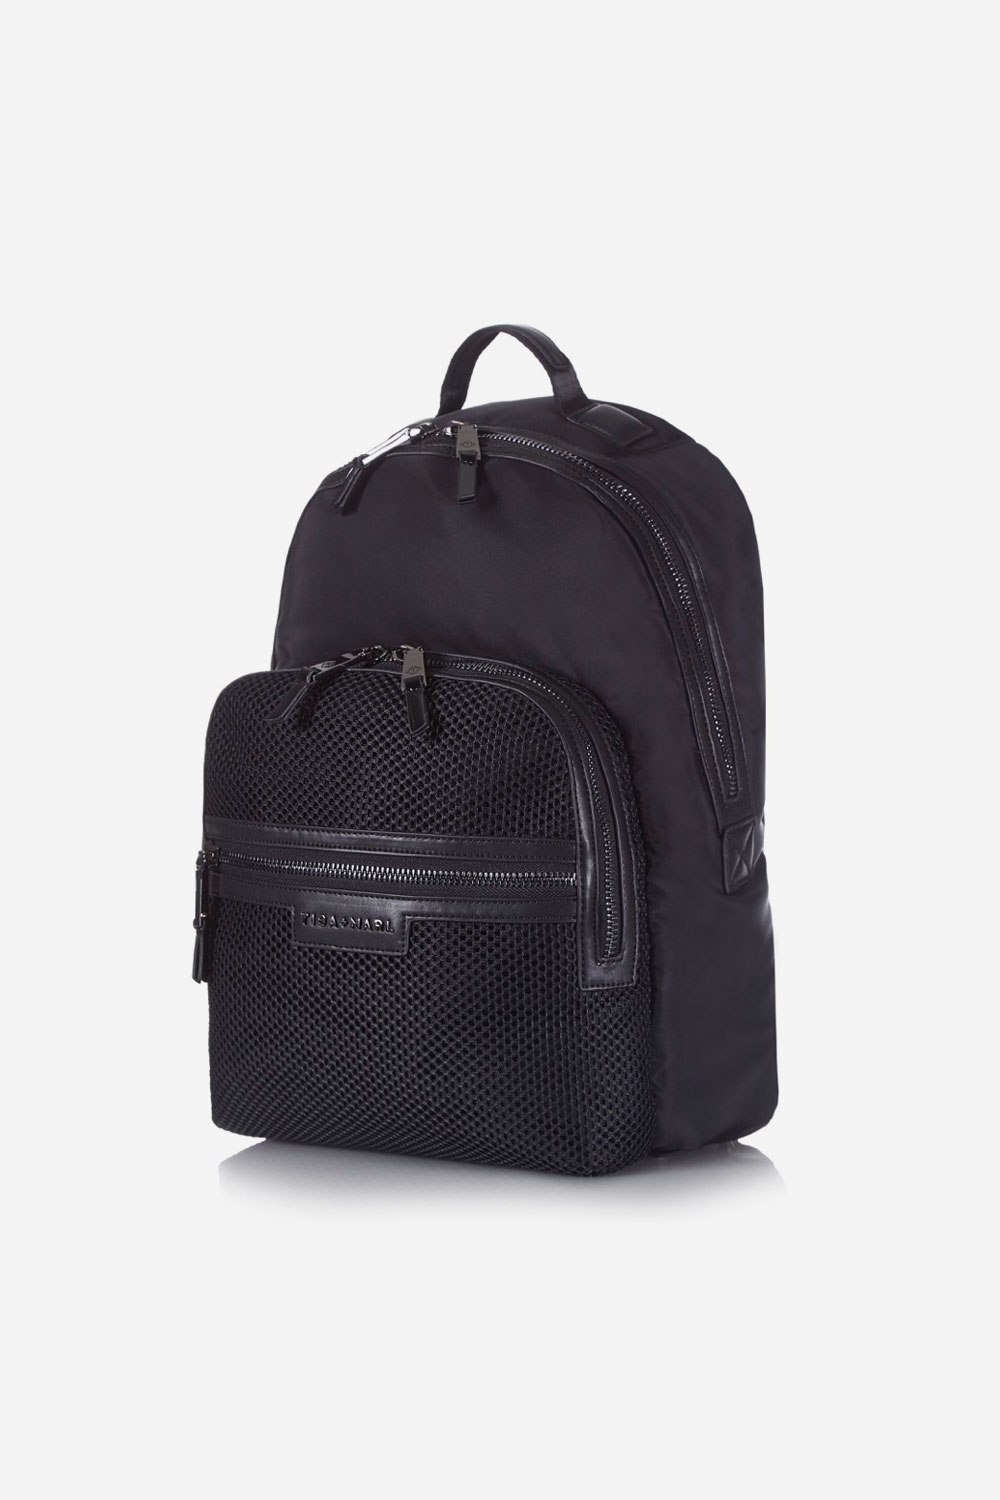 4b882fbf97 T+M x Selfridges Elwood Backpack Black Mesh — Tiba + Marl